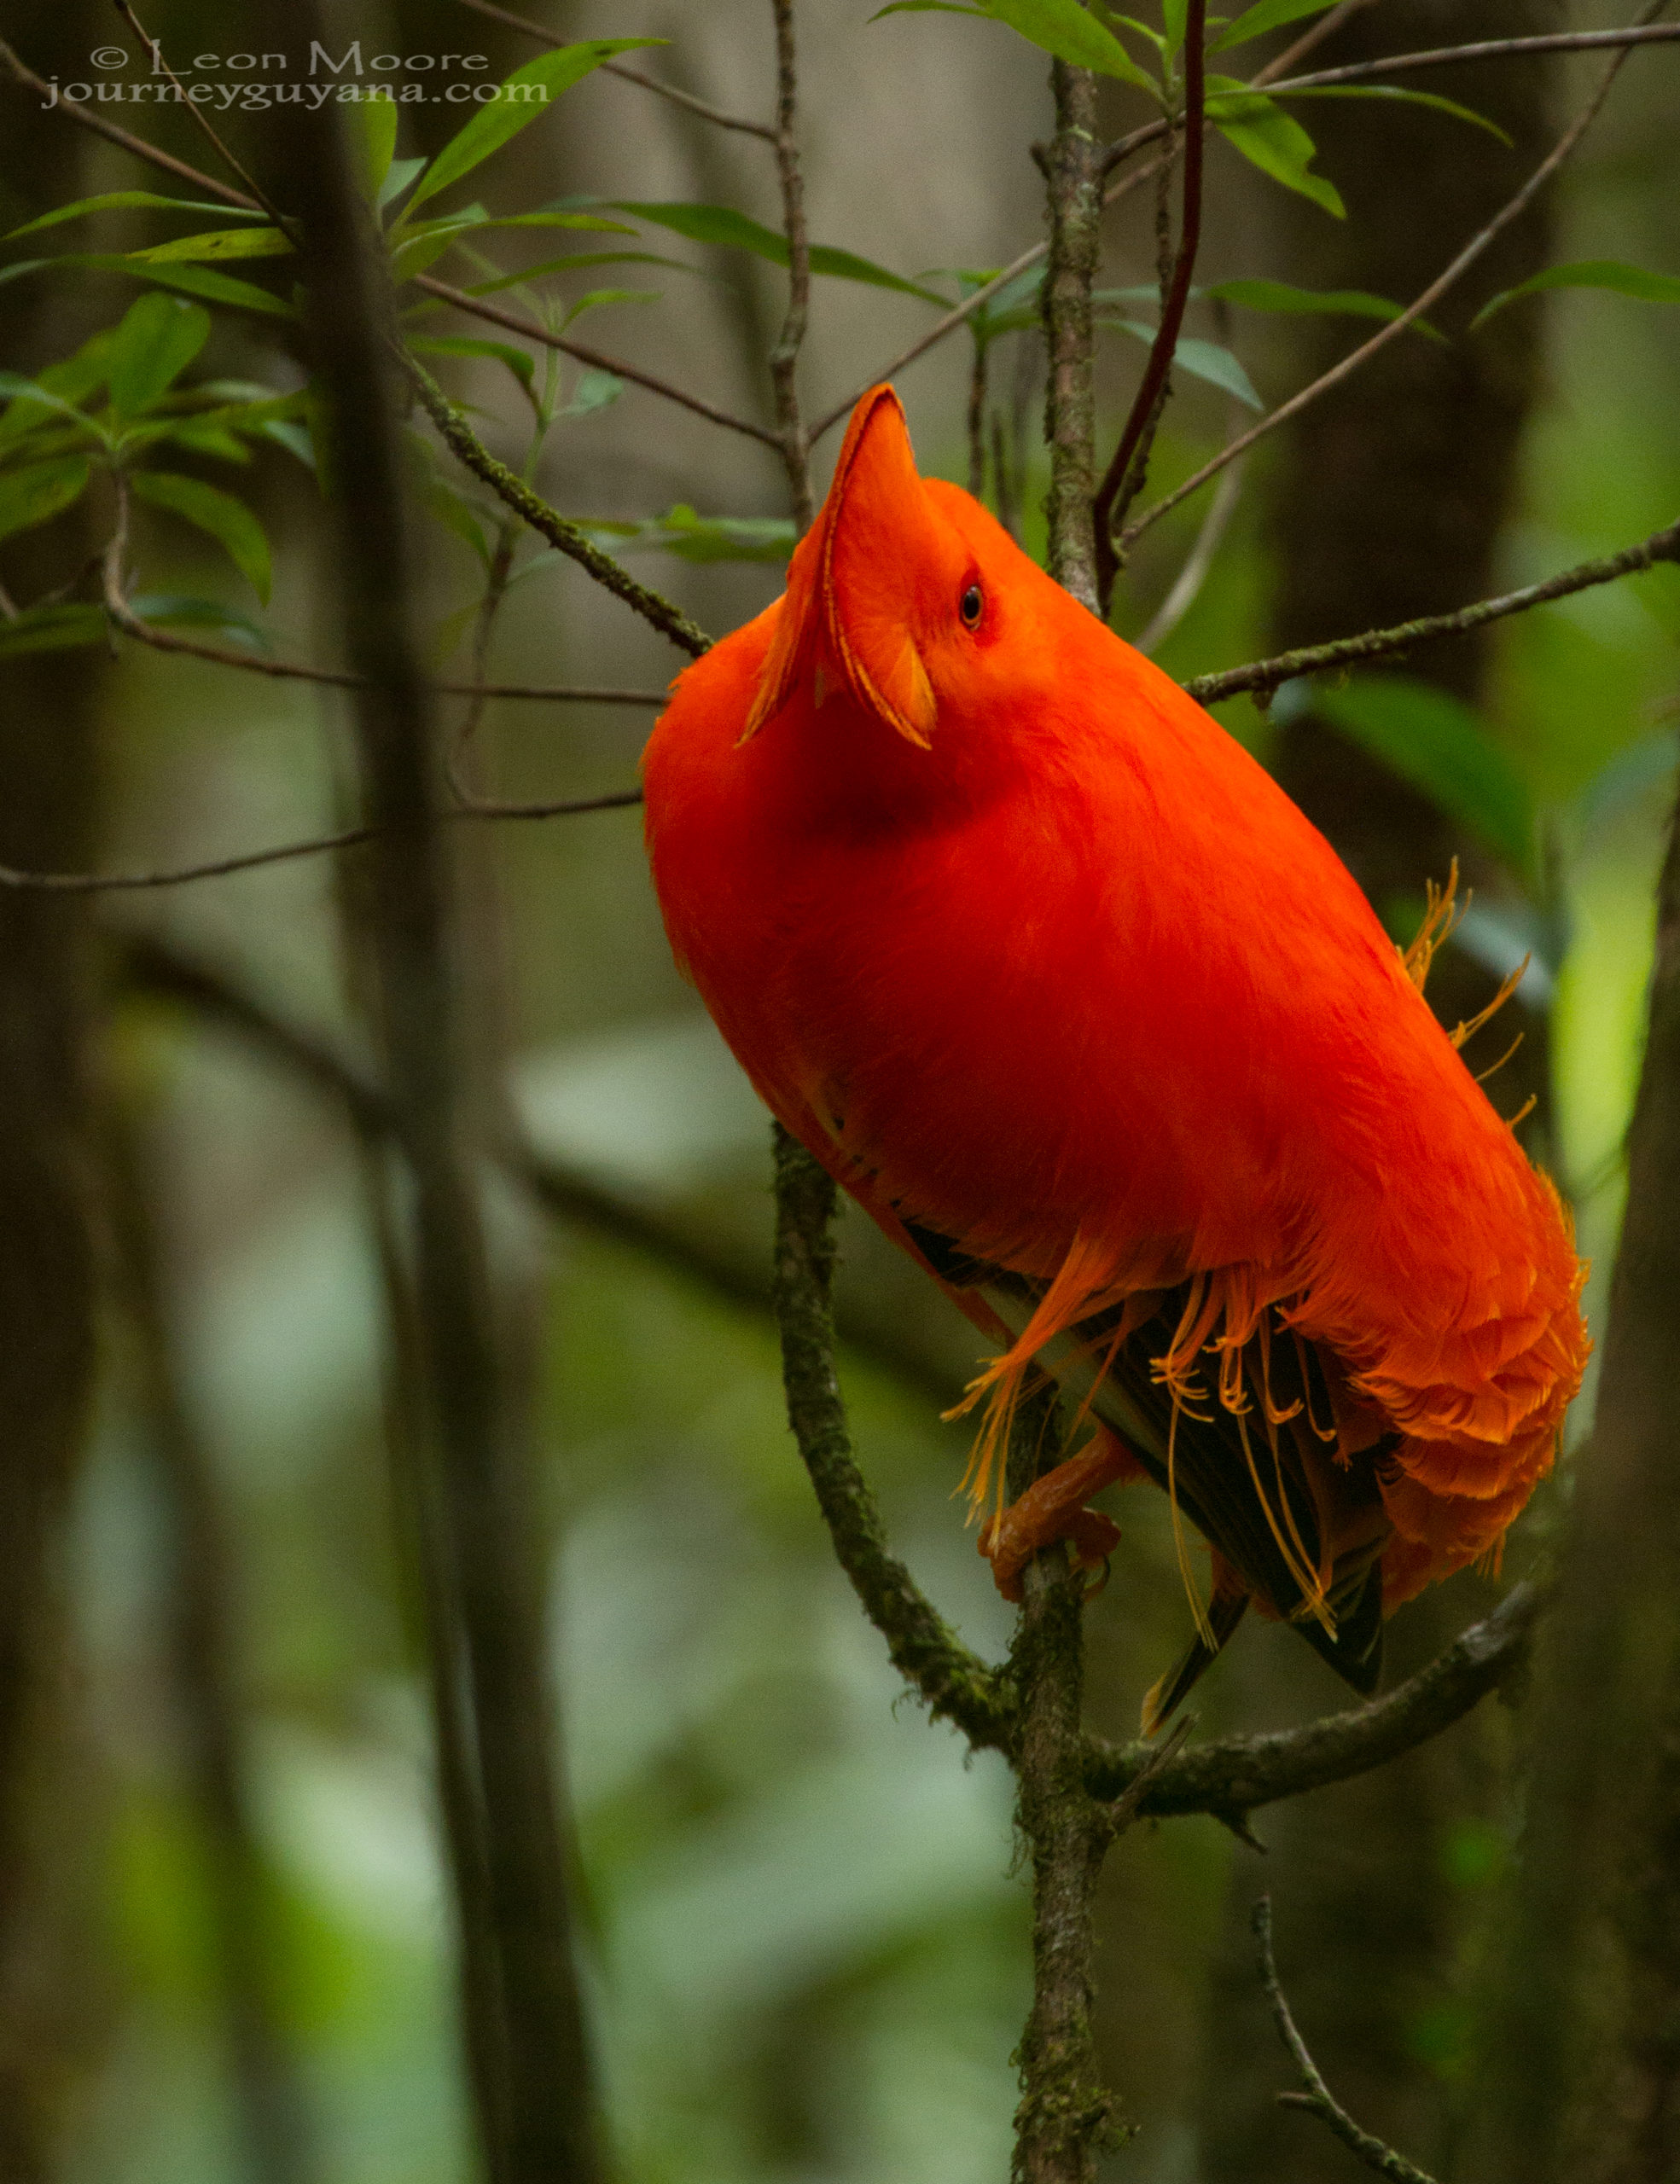 Guyana Birding offers opportuntiies to see the Guianan Cock of the Rock